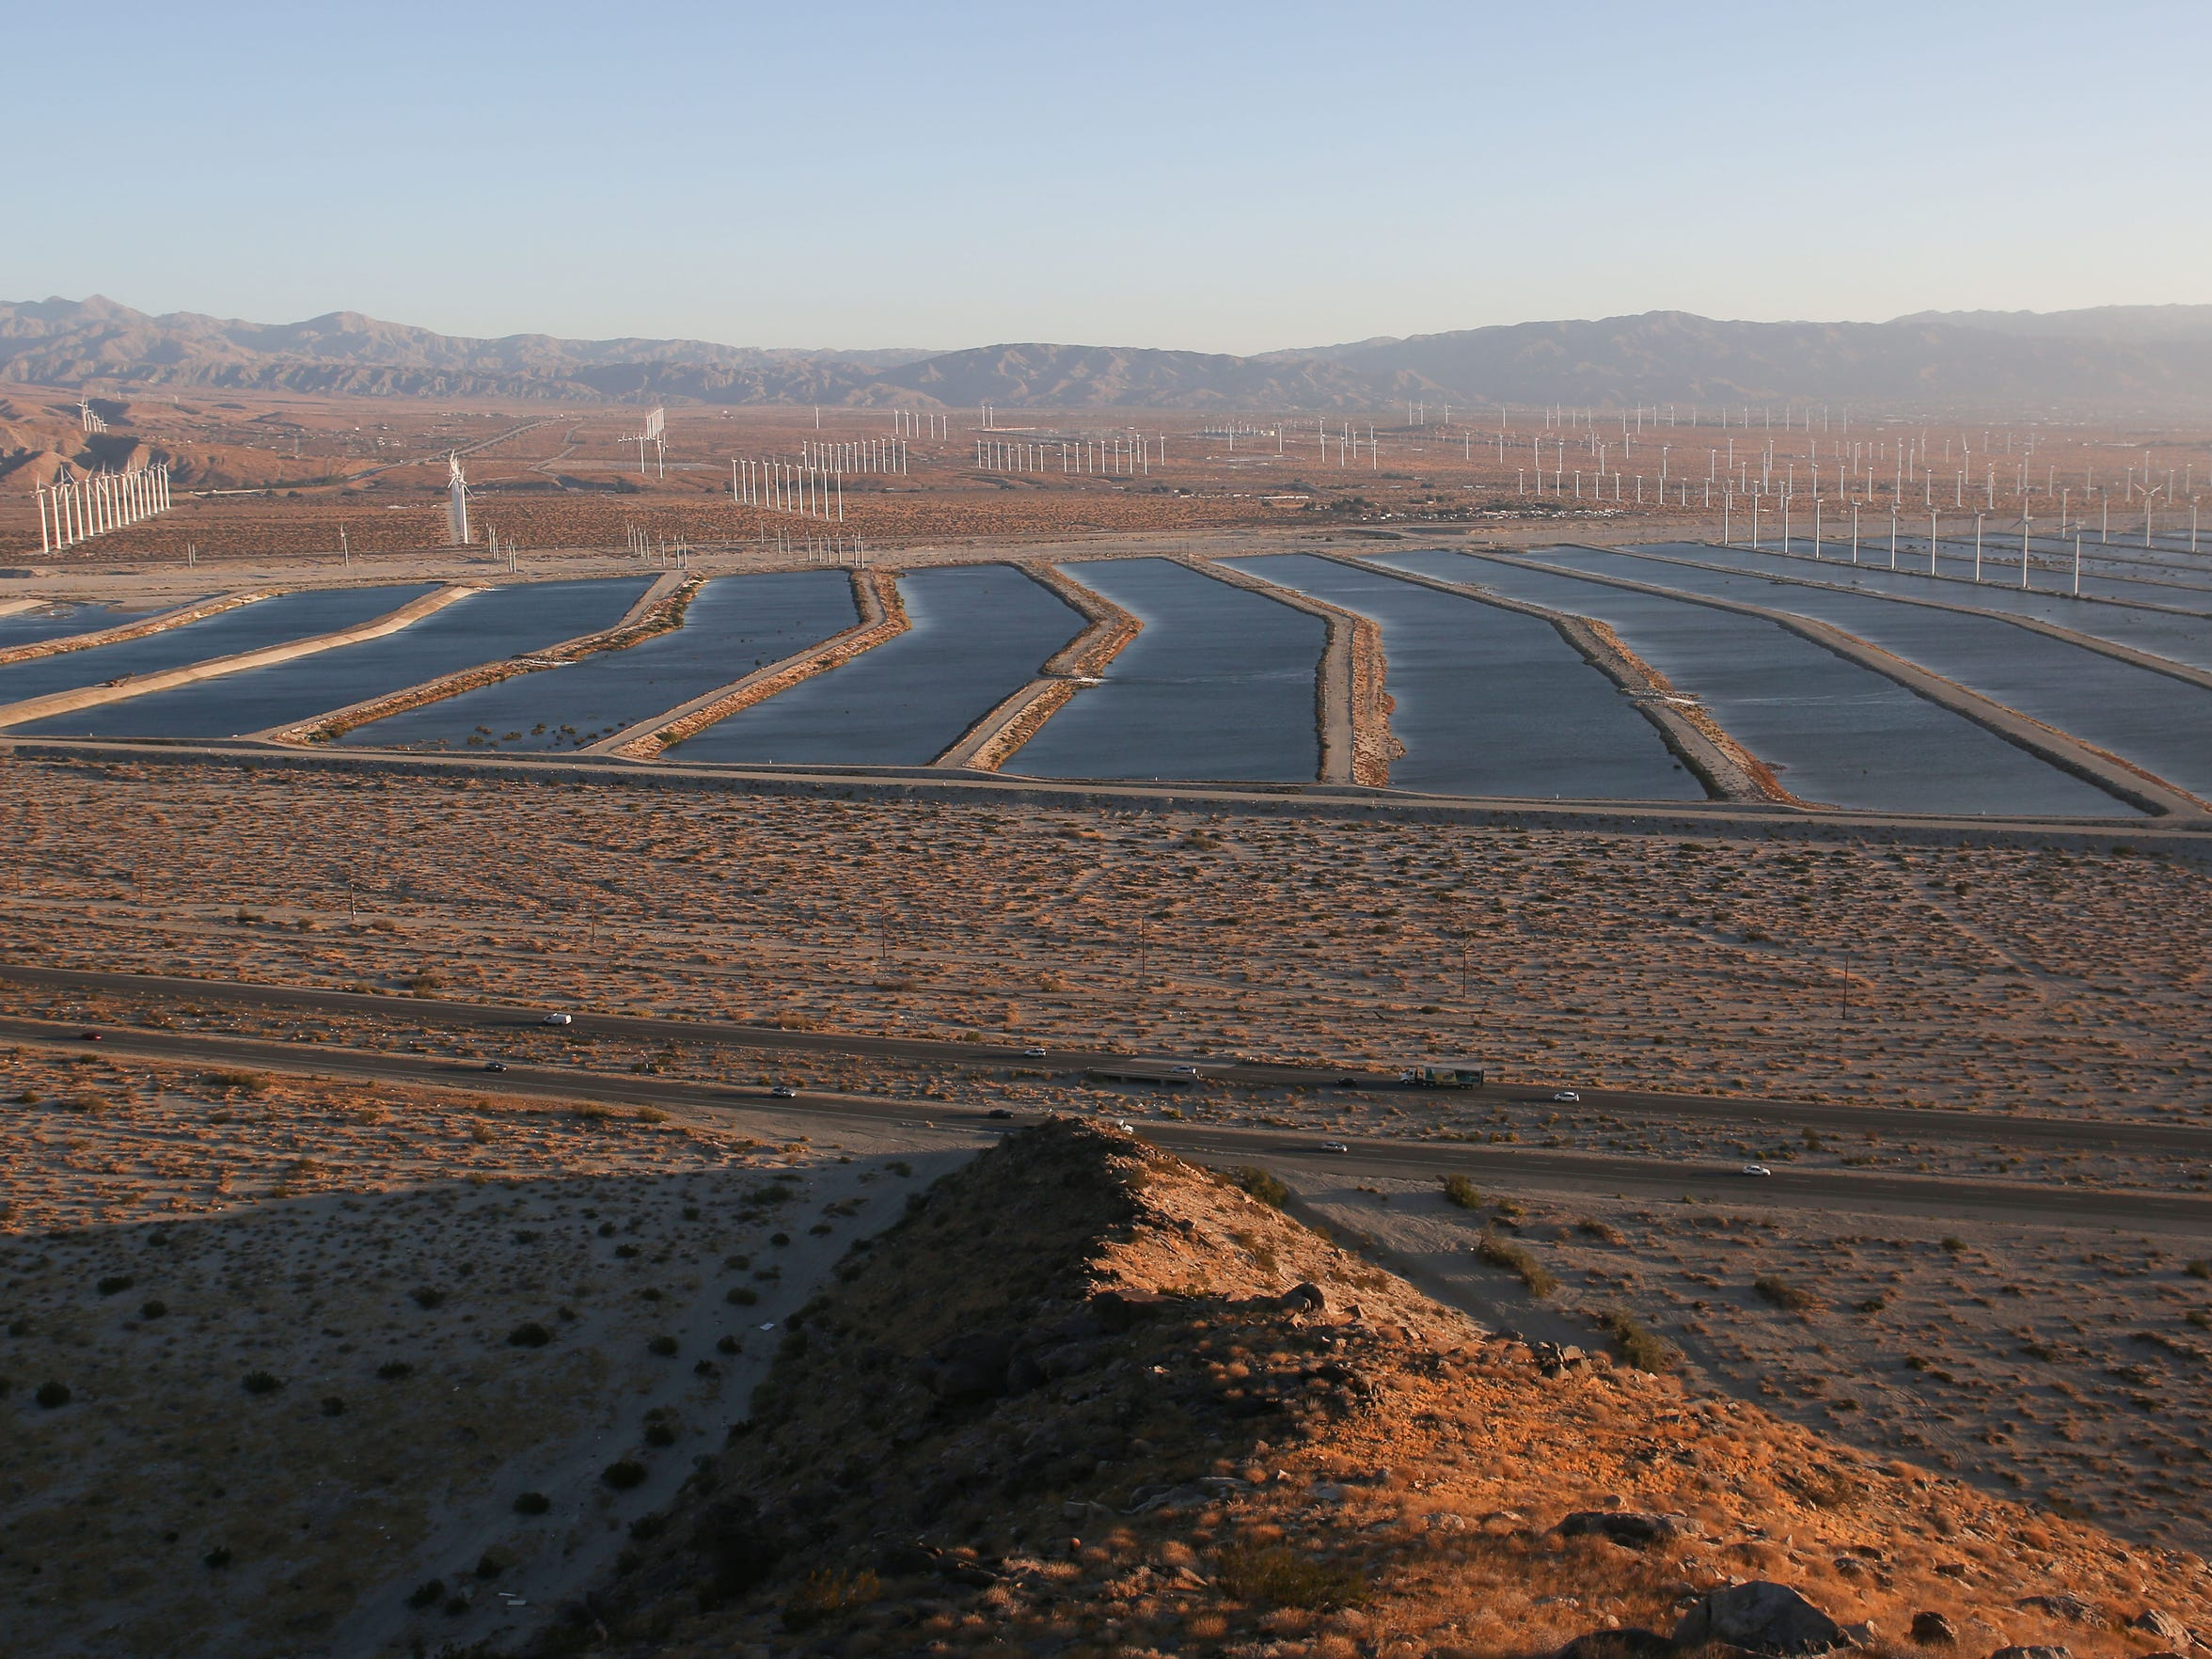 A record amount of Colorado River water poured into the Whitewater River groundwater replenishment facility in Palm Springs in 2017.